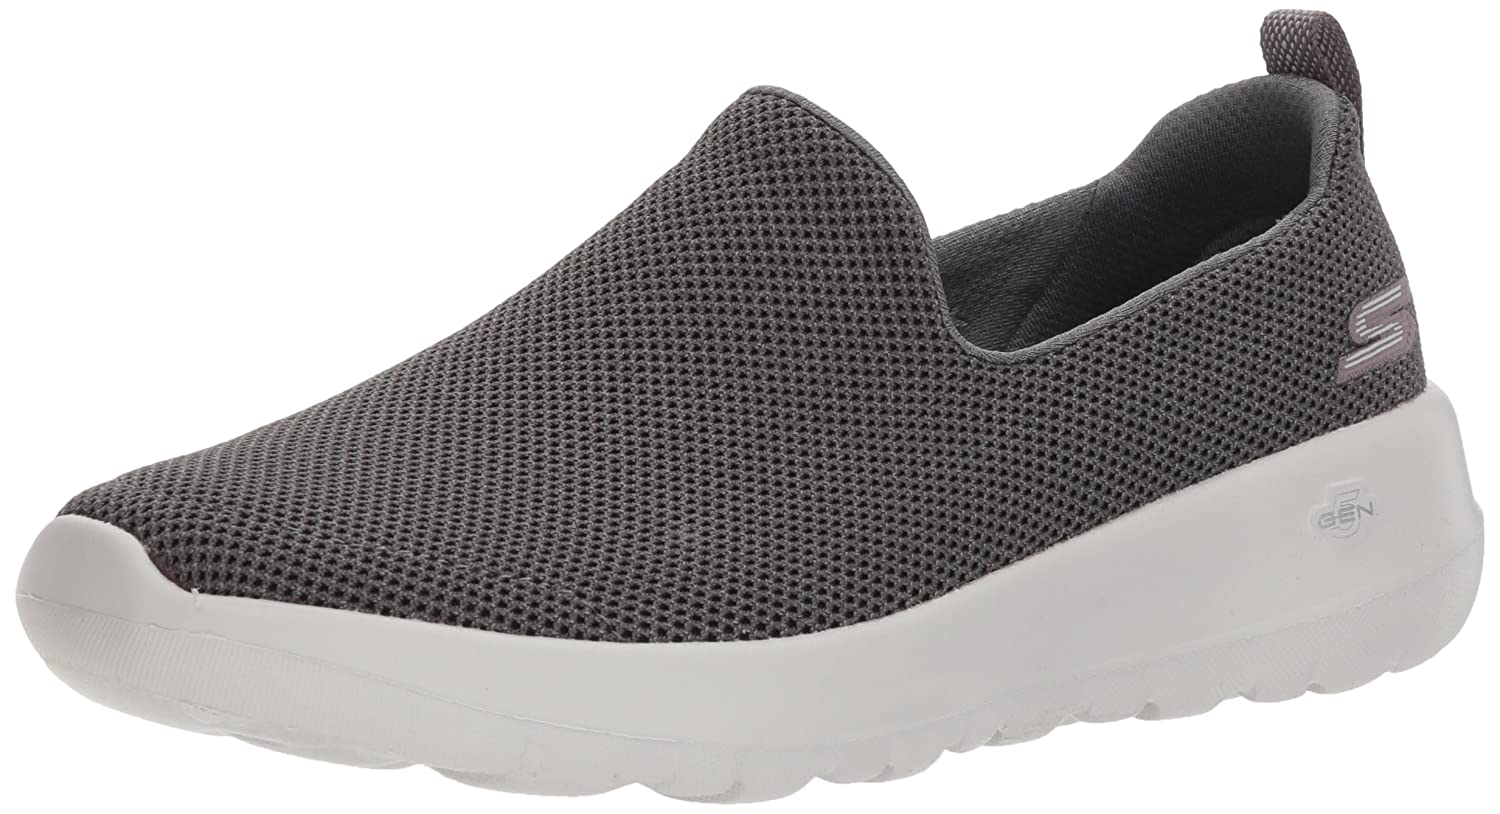 Skechers Women's Go Walk Joy-15609 Sneaker B0752XB9L6 10.5 B(M) US|Charcoal